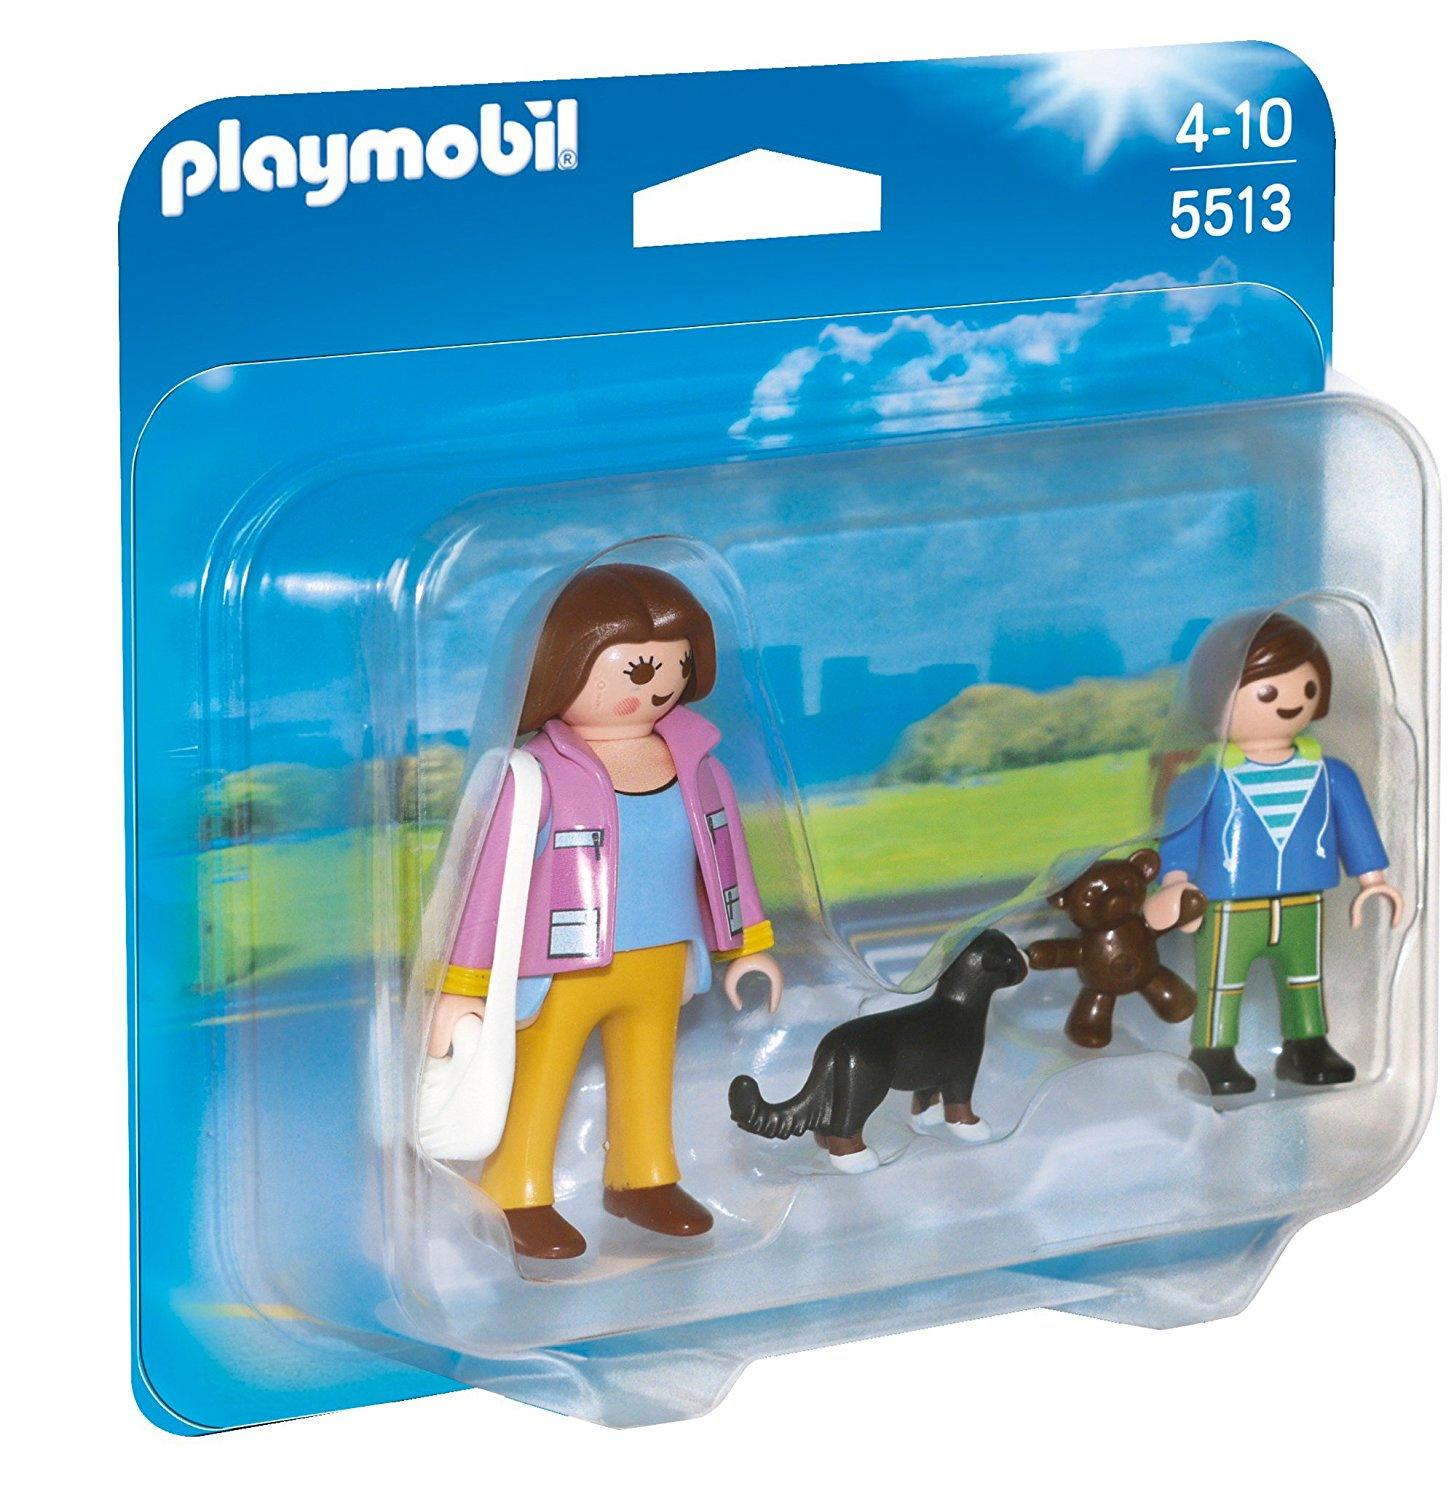 Playmobil City Life Mother Child Duo Figure Set22